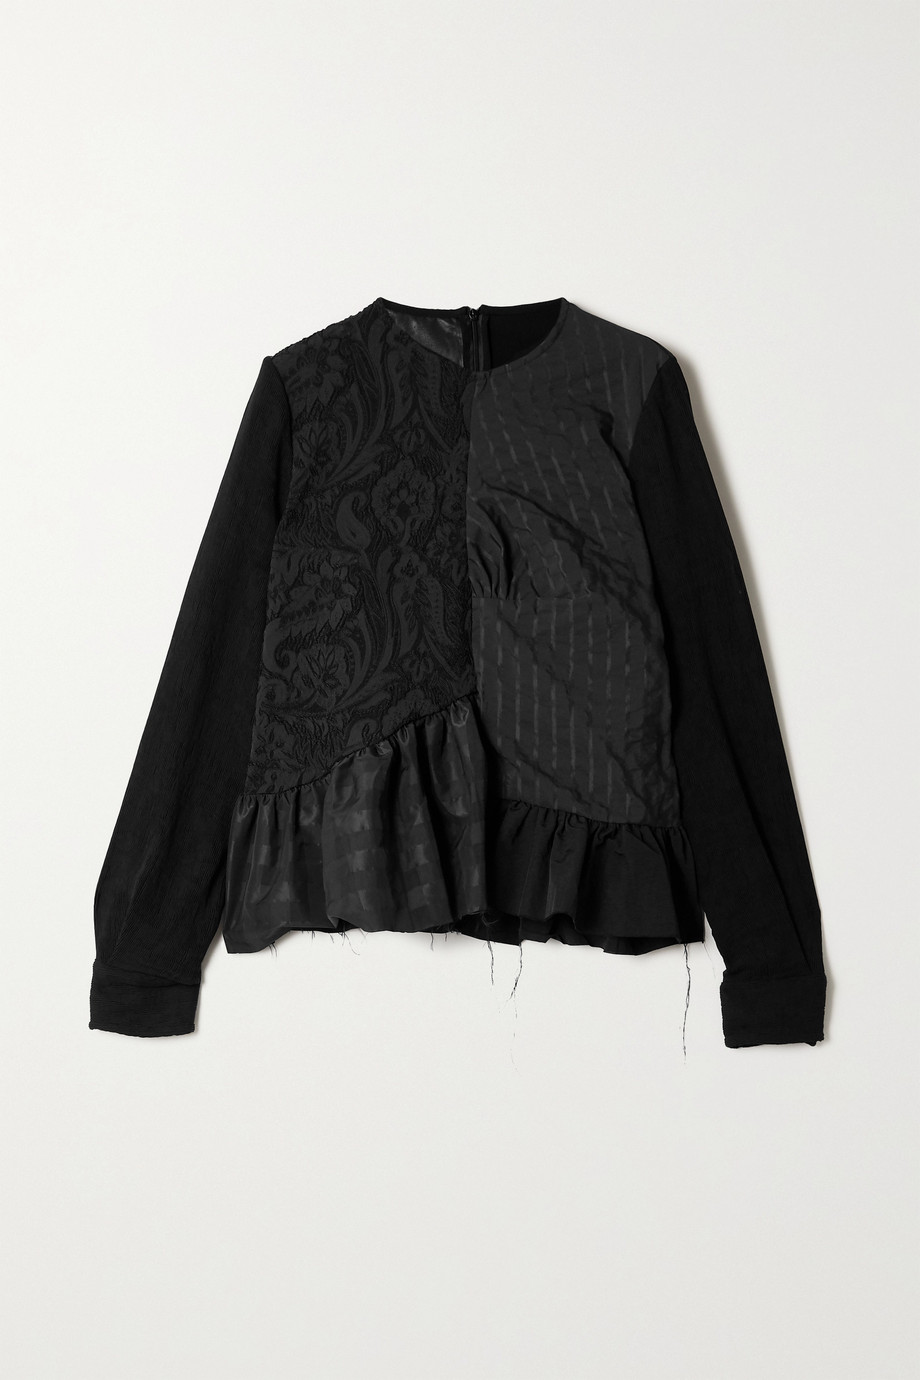 Marques' Almeida + NET SUSTAIN ReM'Ade by Marques' Almeida oversized jacquard and seersucker blouse